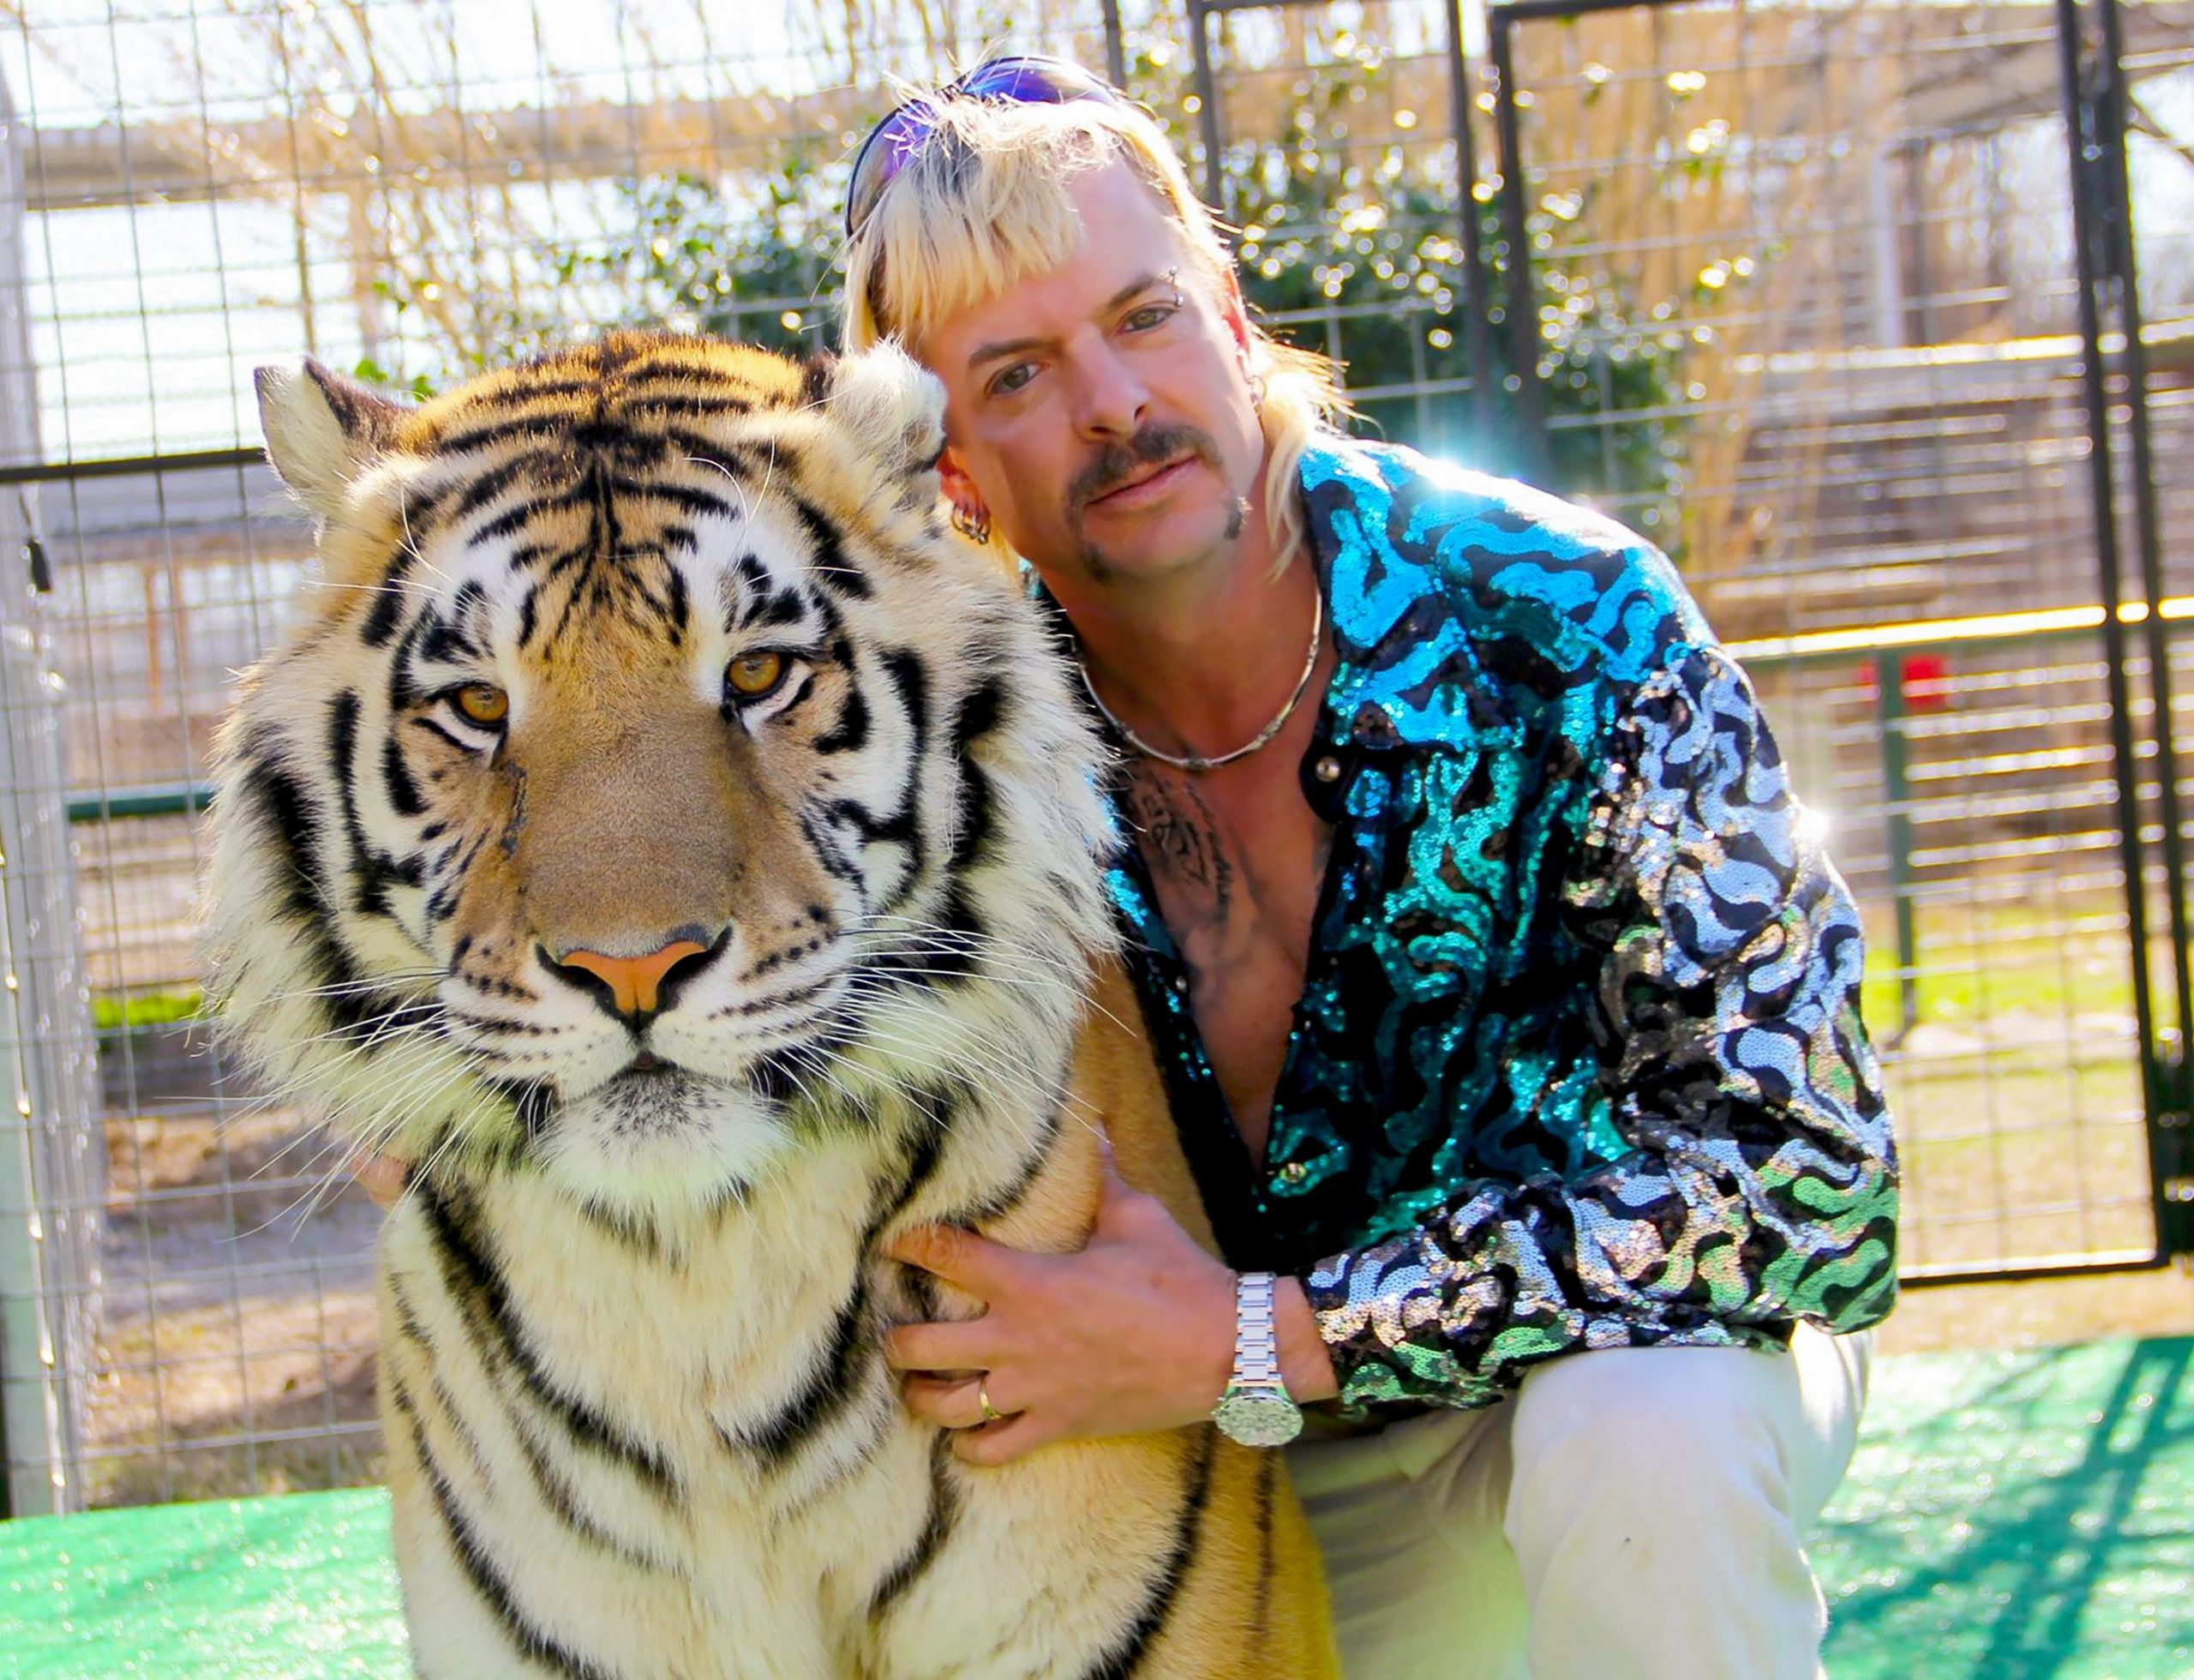 Attorney for 'Tiger King' says they're close to getting pardon from Trump